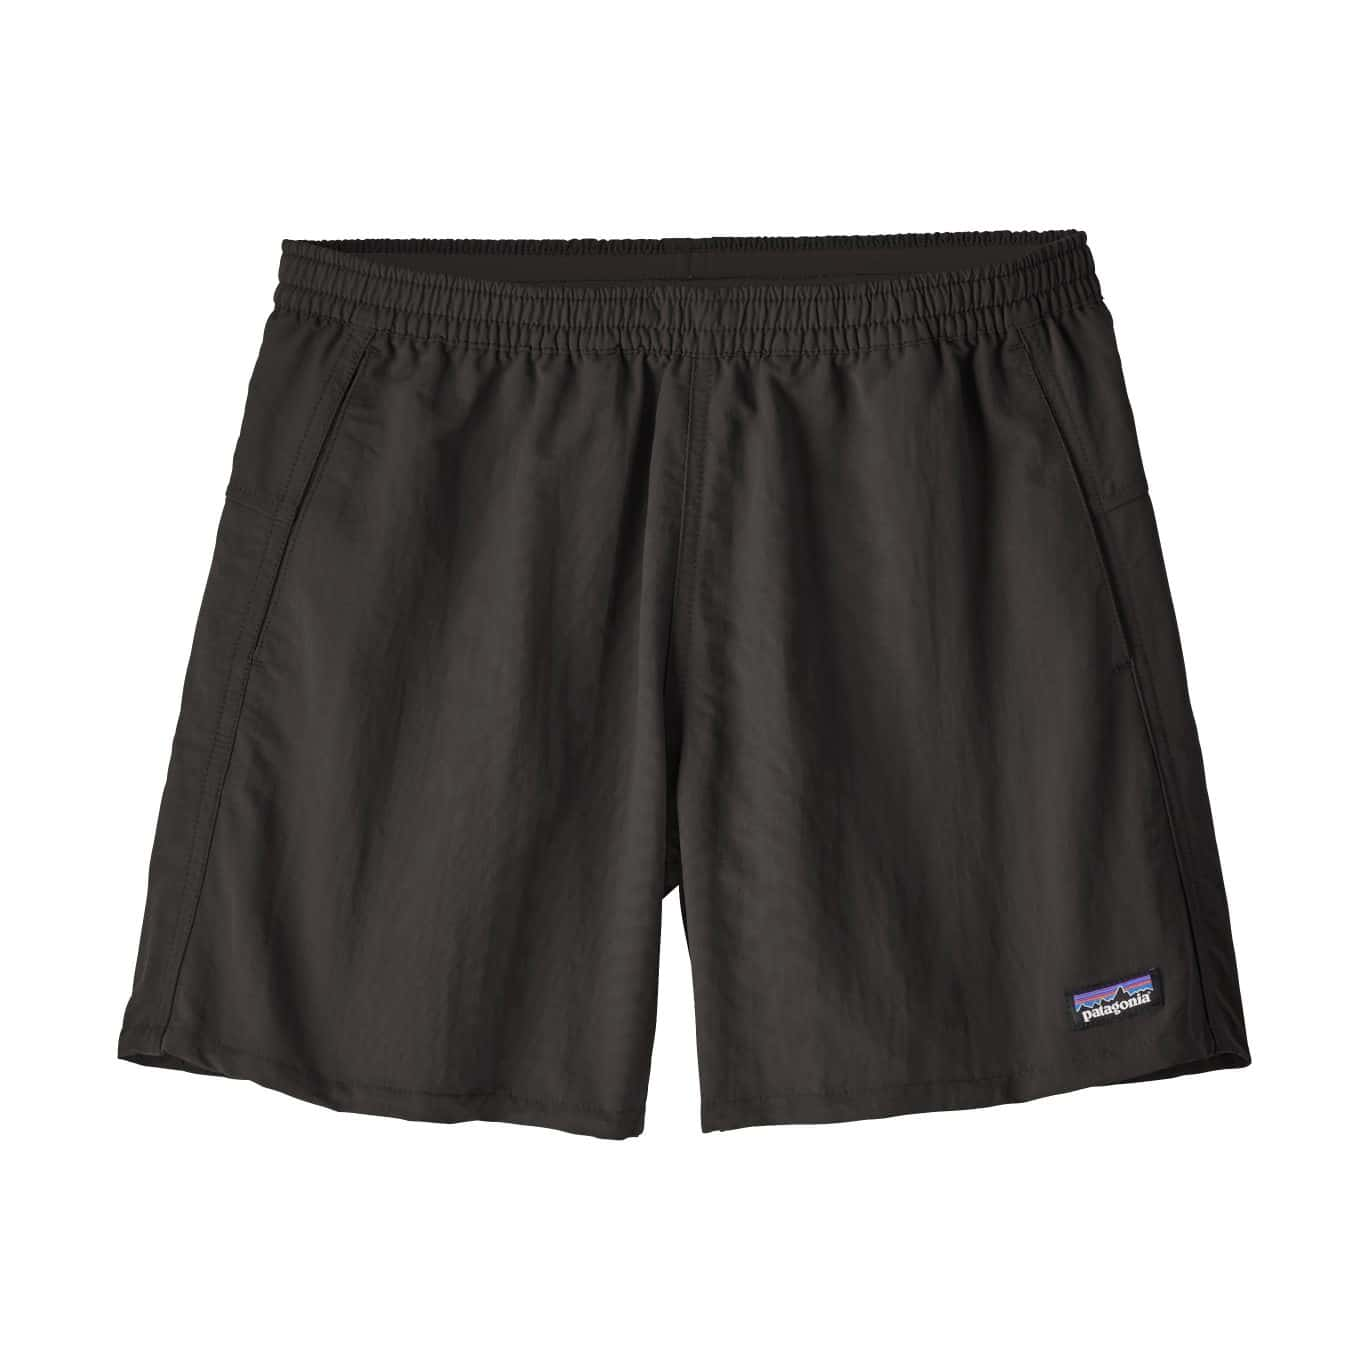 Patagonia-Baggies Shorts 5